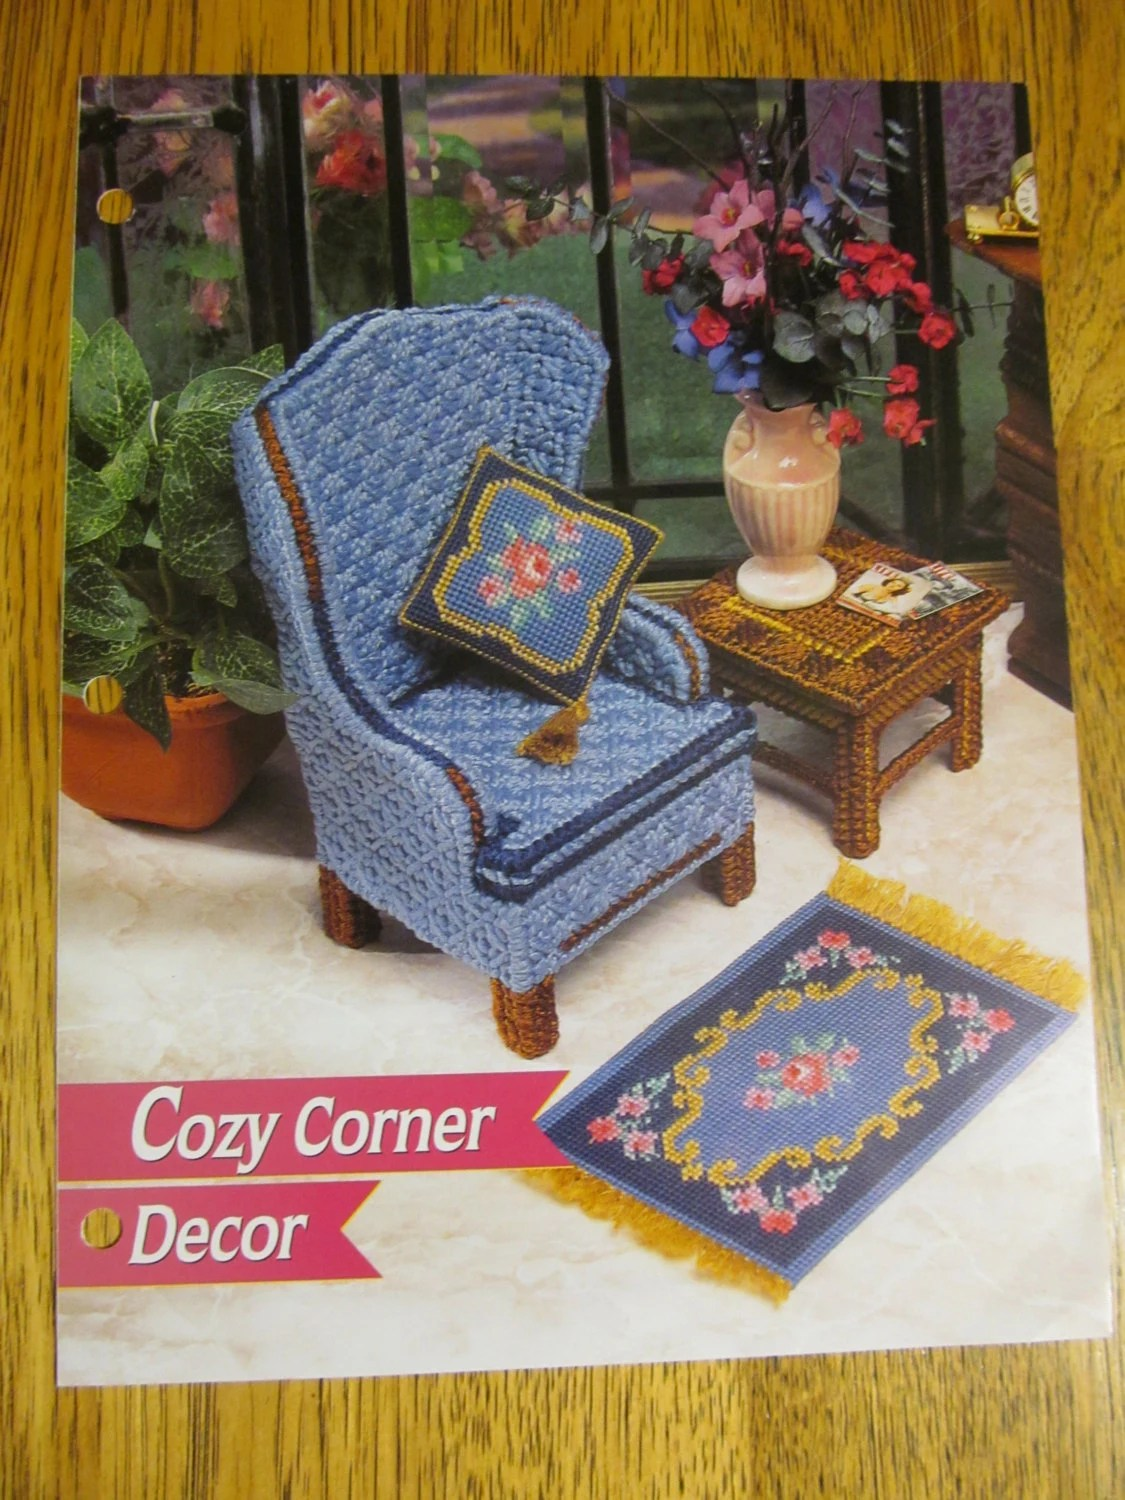 Cosy Corner Decor Overstuffed Chair Coffee Table Needlework Rug Plastic Canvas Patterns For 11 5 Fashion Barbie Doll Furniture